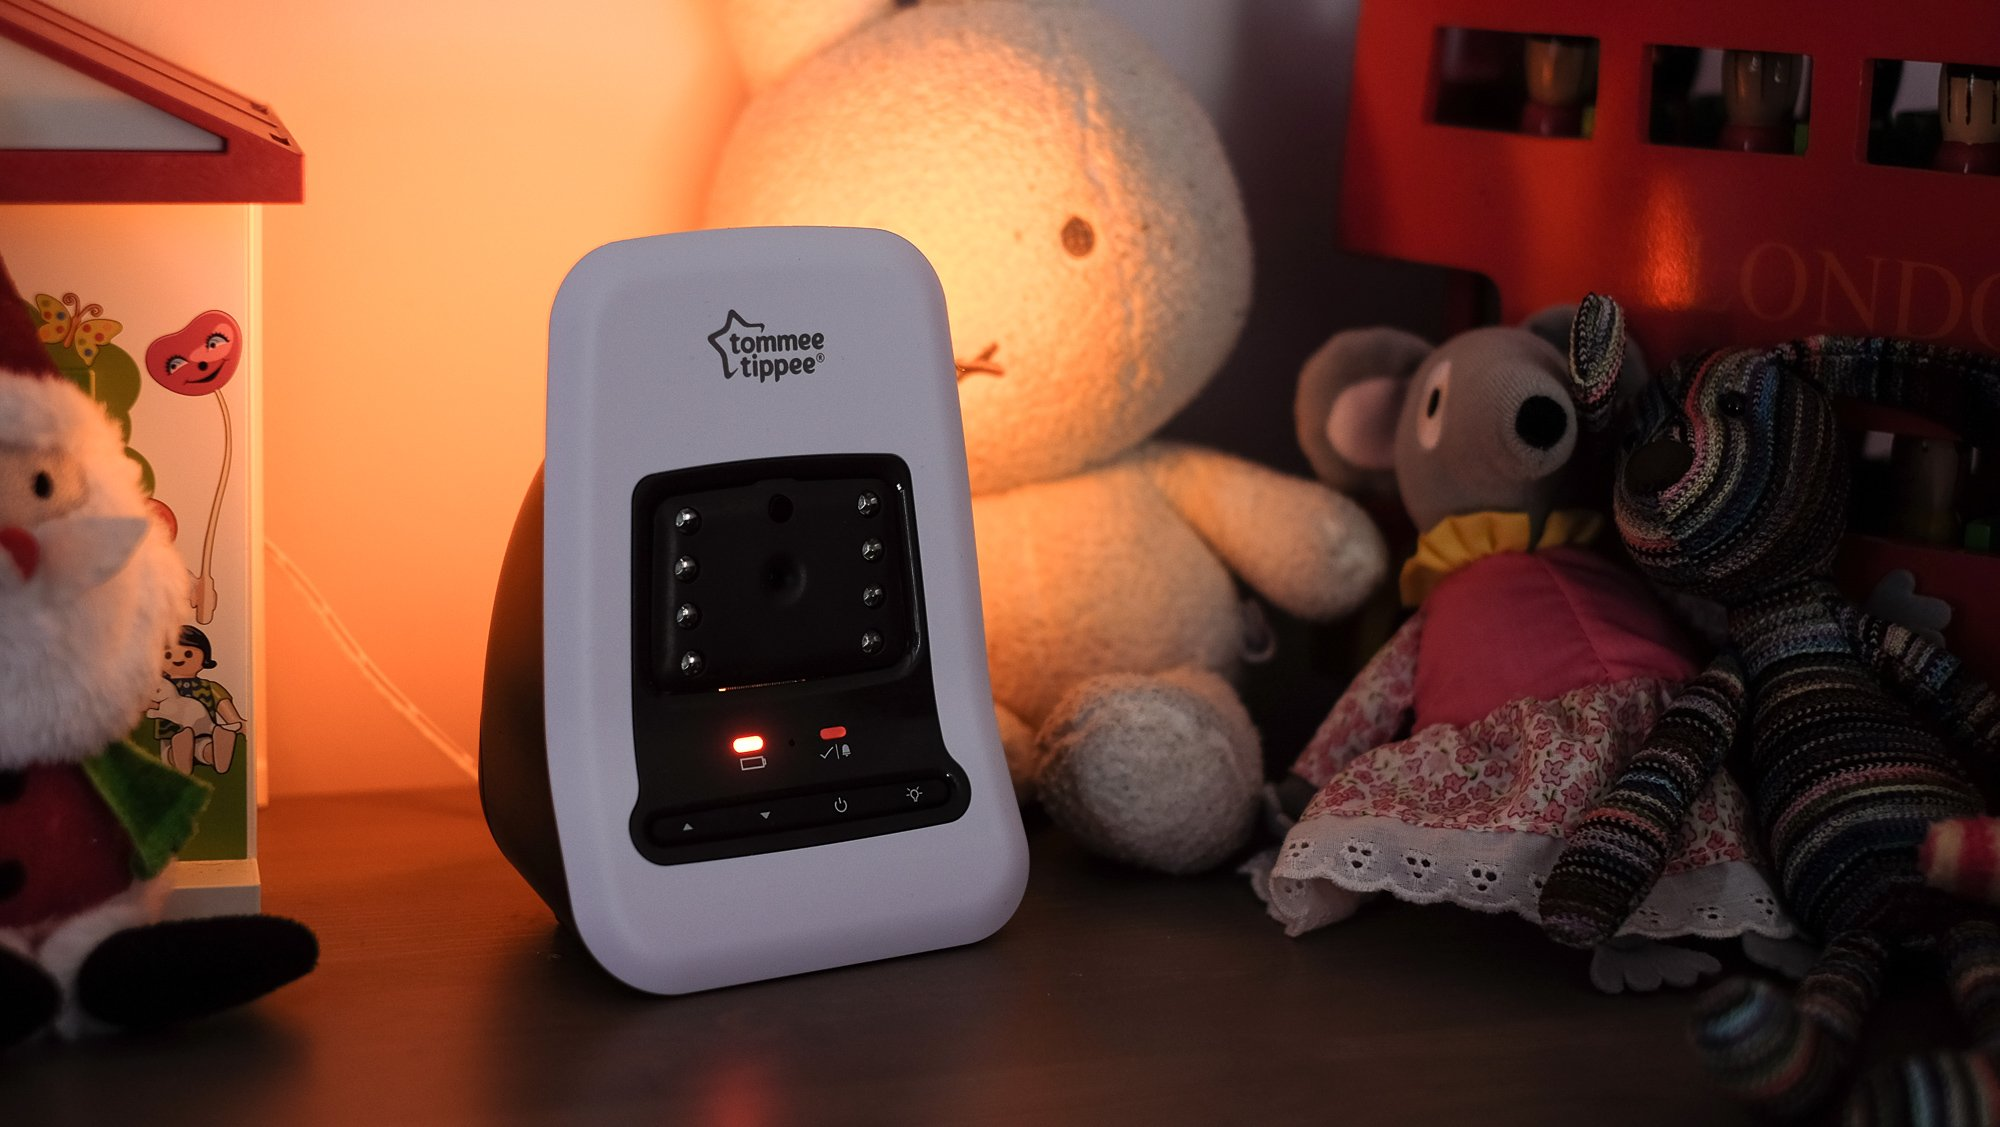 tommee tippee closer to nature video sensor monitor review the baby monitor. Black Bedroom Furniture Sets. Home Design Ideas